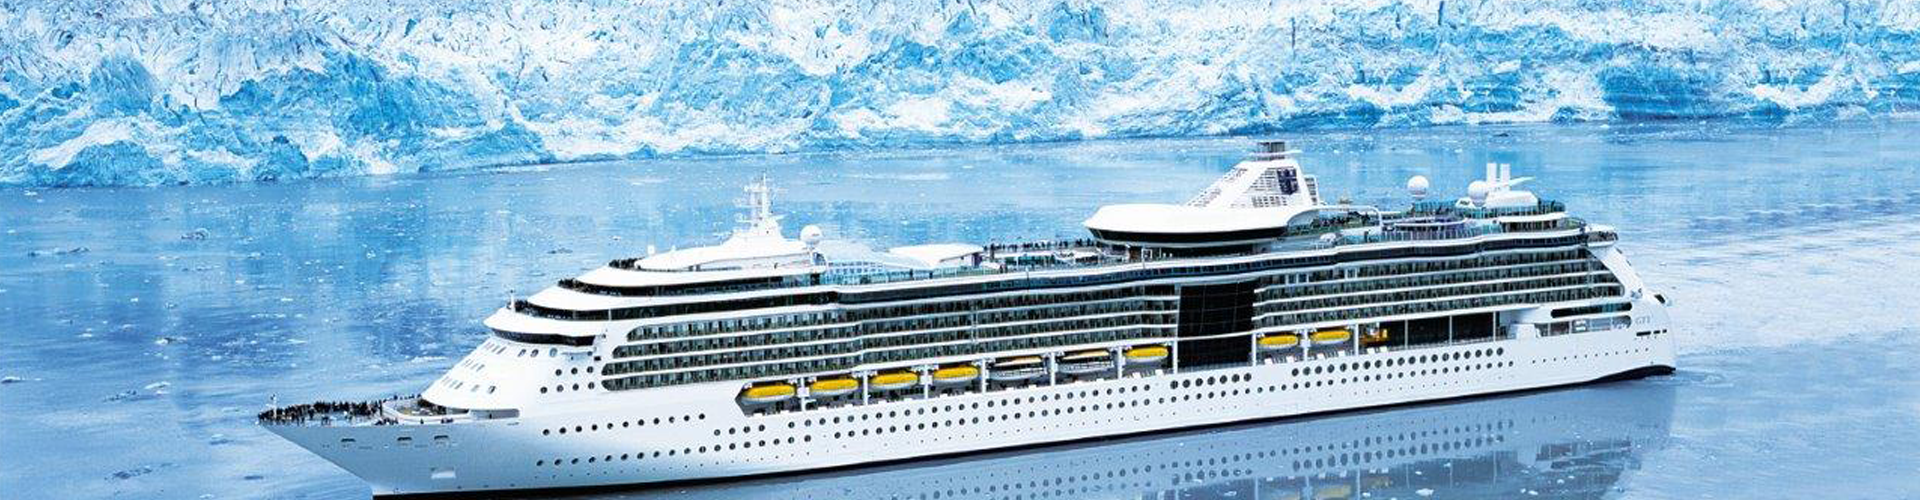 alaskan-cruise-bethel-tour-vacations